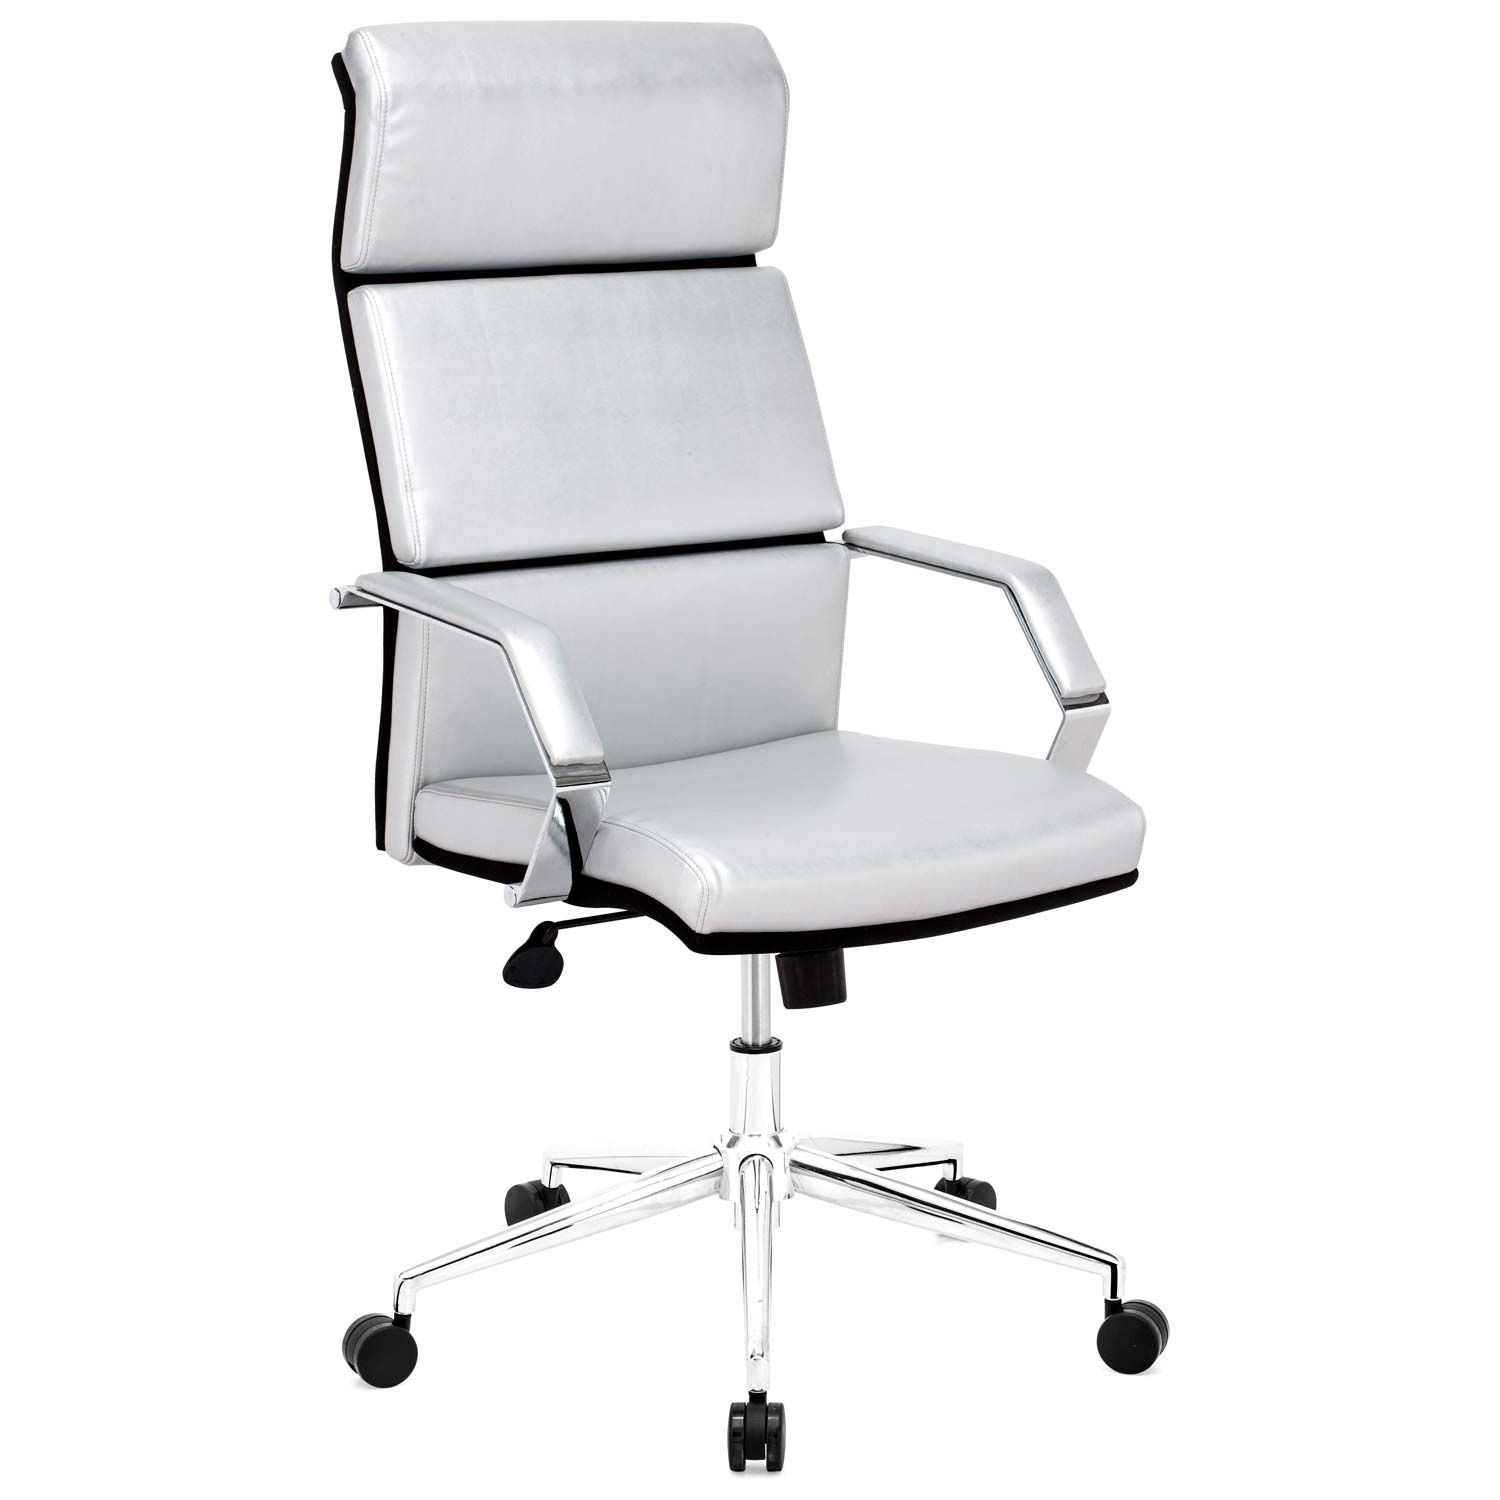 Lider Pro Office Chair - Chrome Steel, Silver - ZM-205312